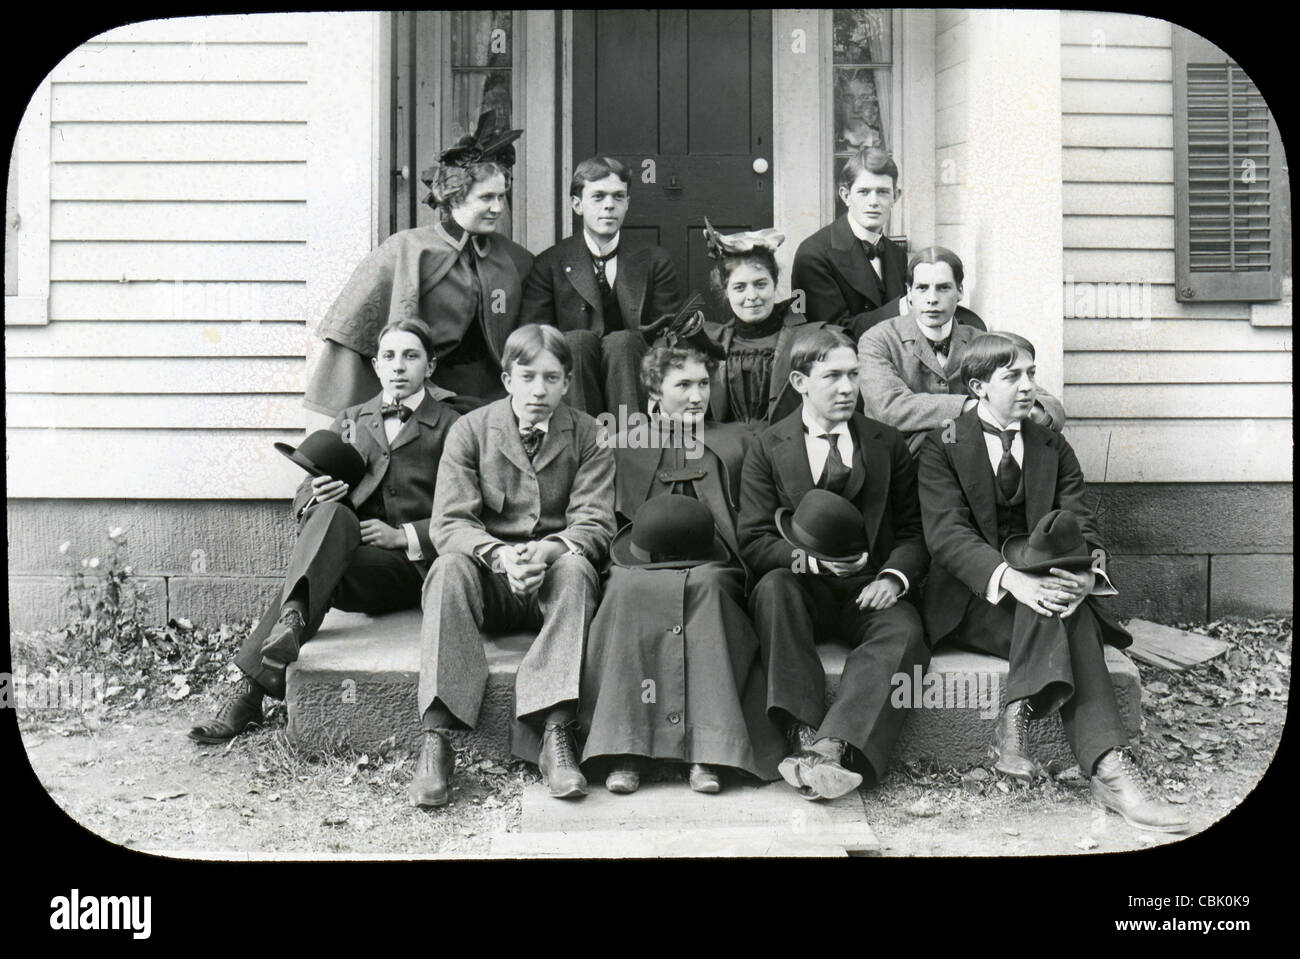 Circa 1900 antique photograph of a group of young men and women. Stock Foto